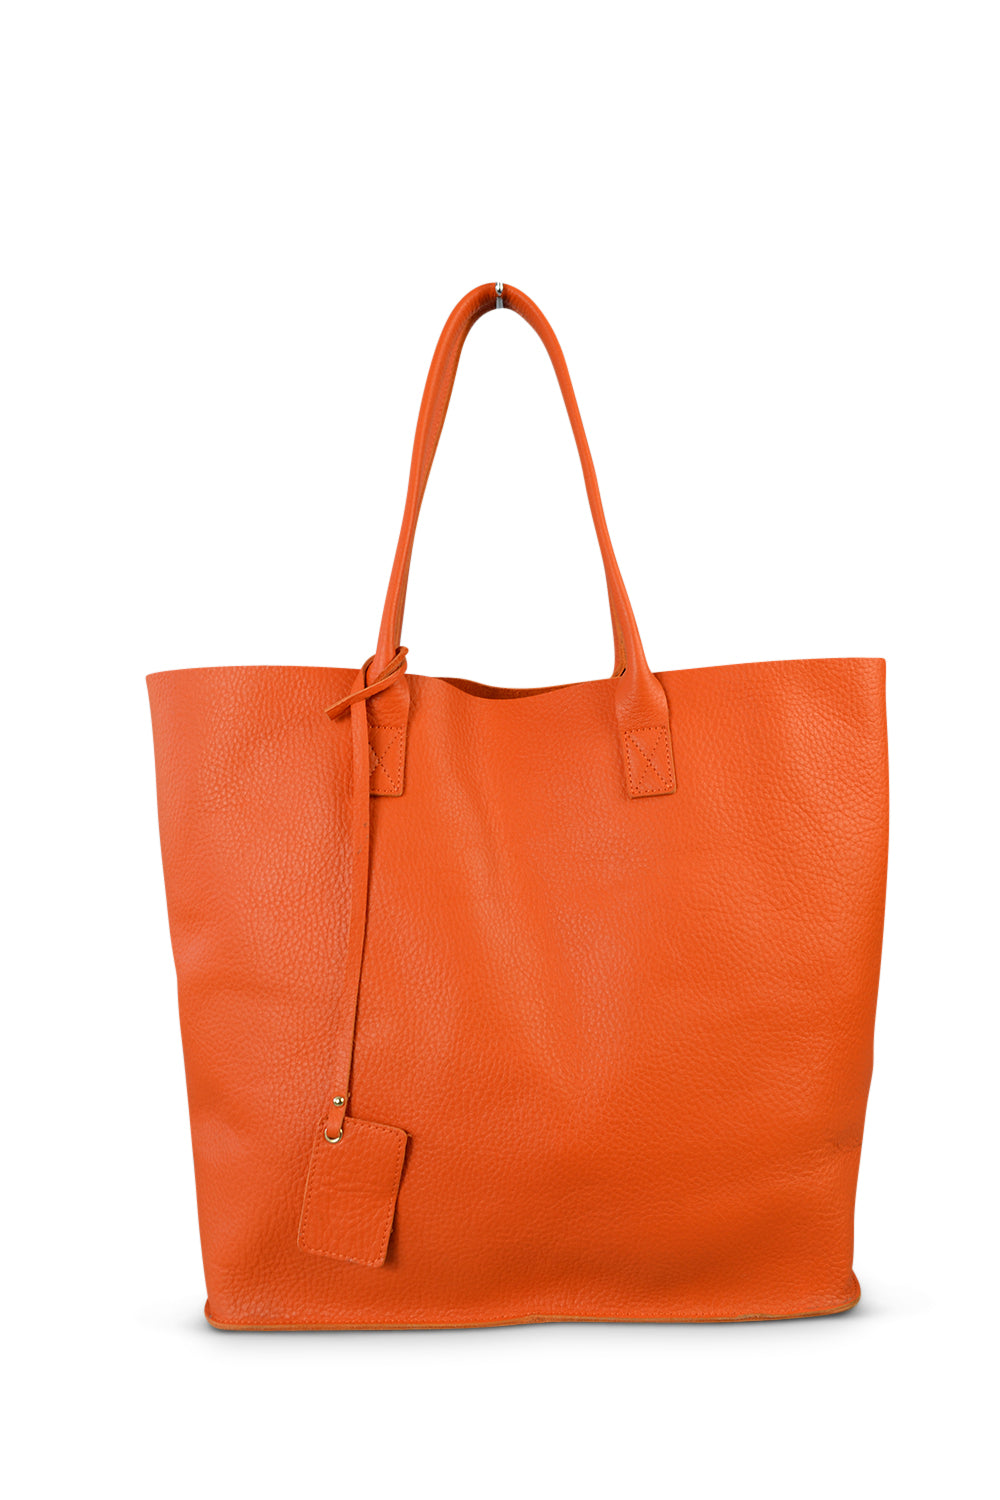 BIRCHGROVE Addison Road Womens Orange Genuine Pebbled Leather Tote  - Belt N Bags